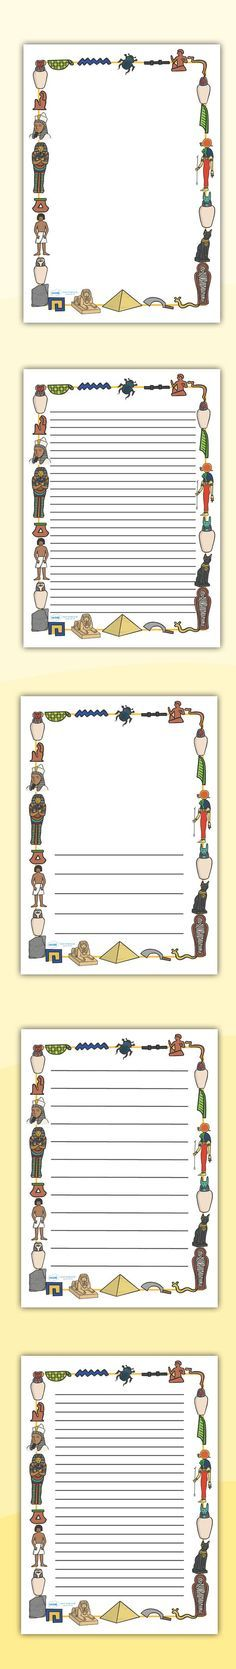 Ancient Egyptian Page Borders. Free Printables.